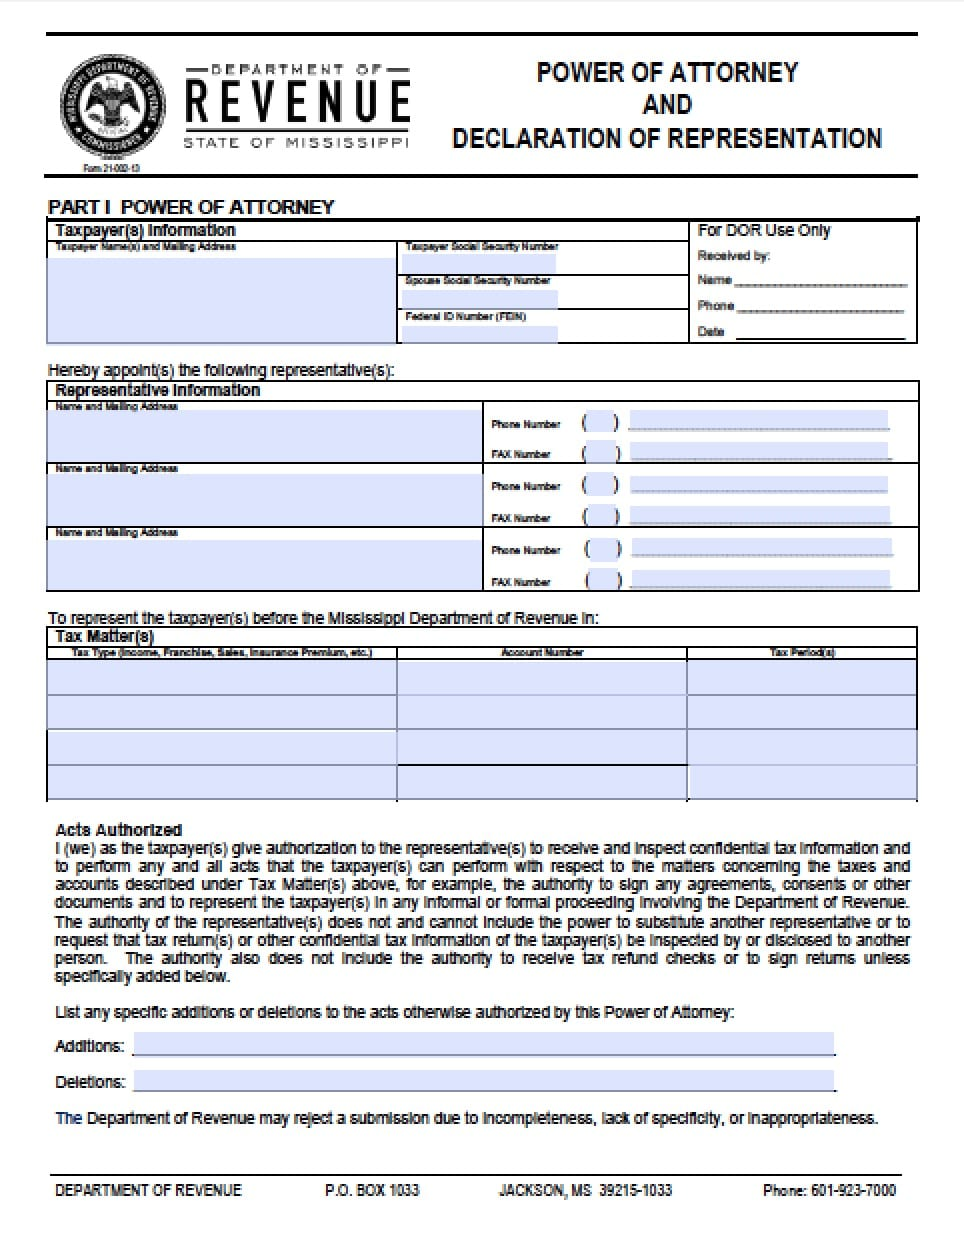 Mississippi tax power of attorney form power of attorney power mississippi tax power of attorney form power of attorney power of attorney falaconquin